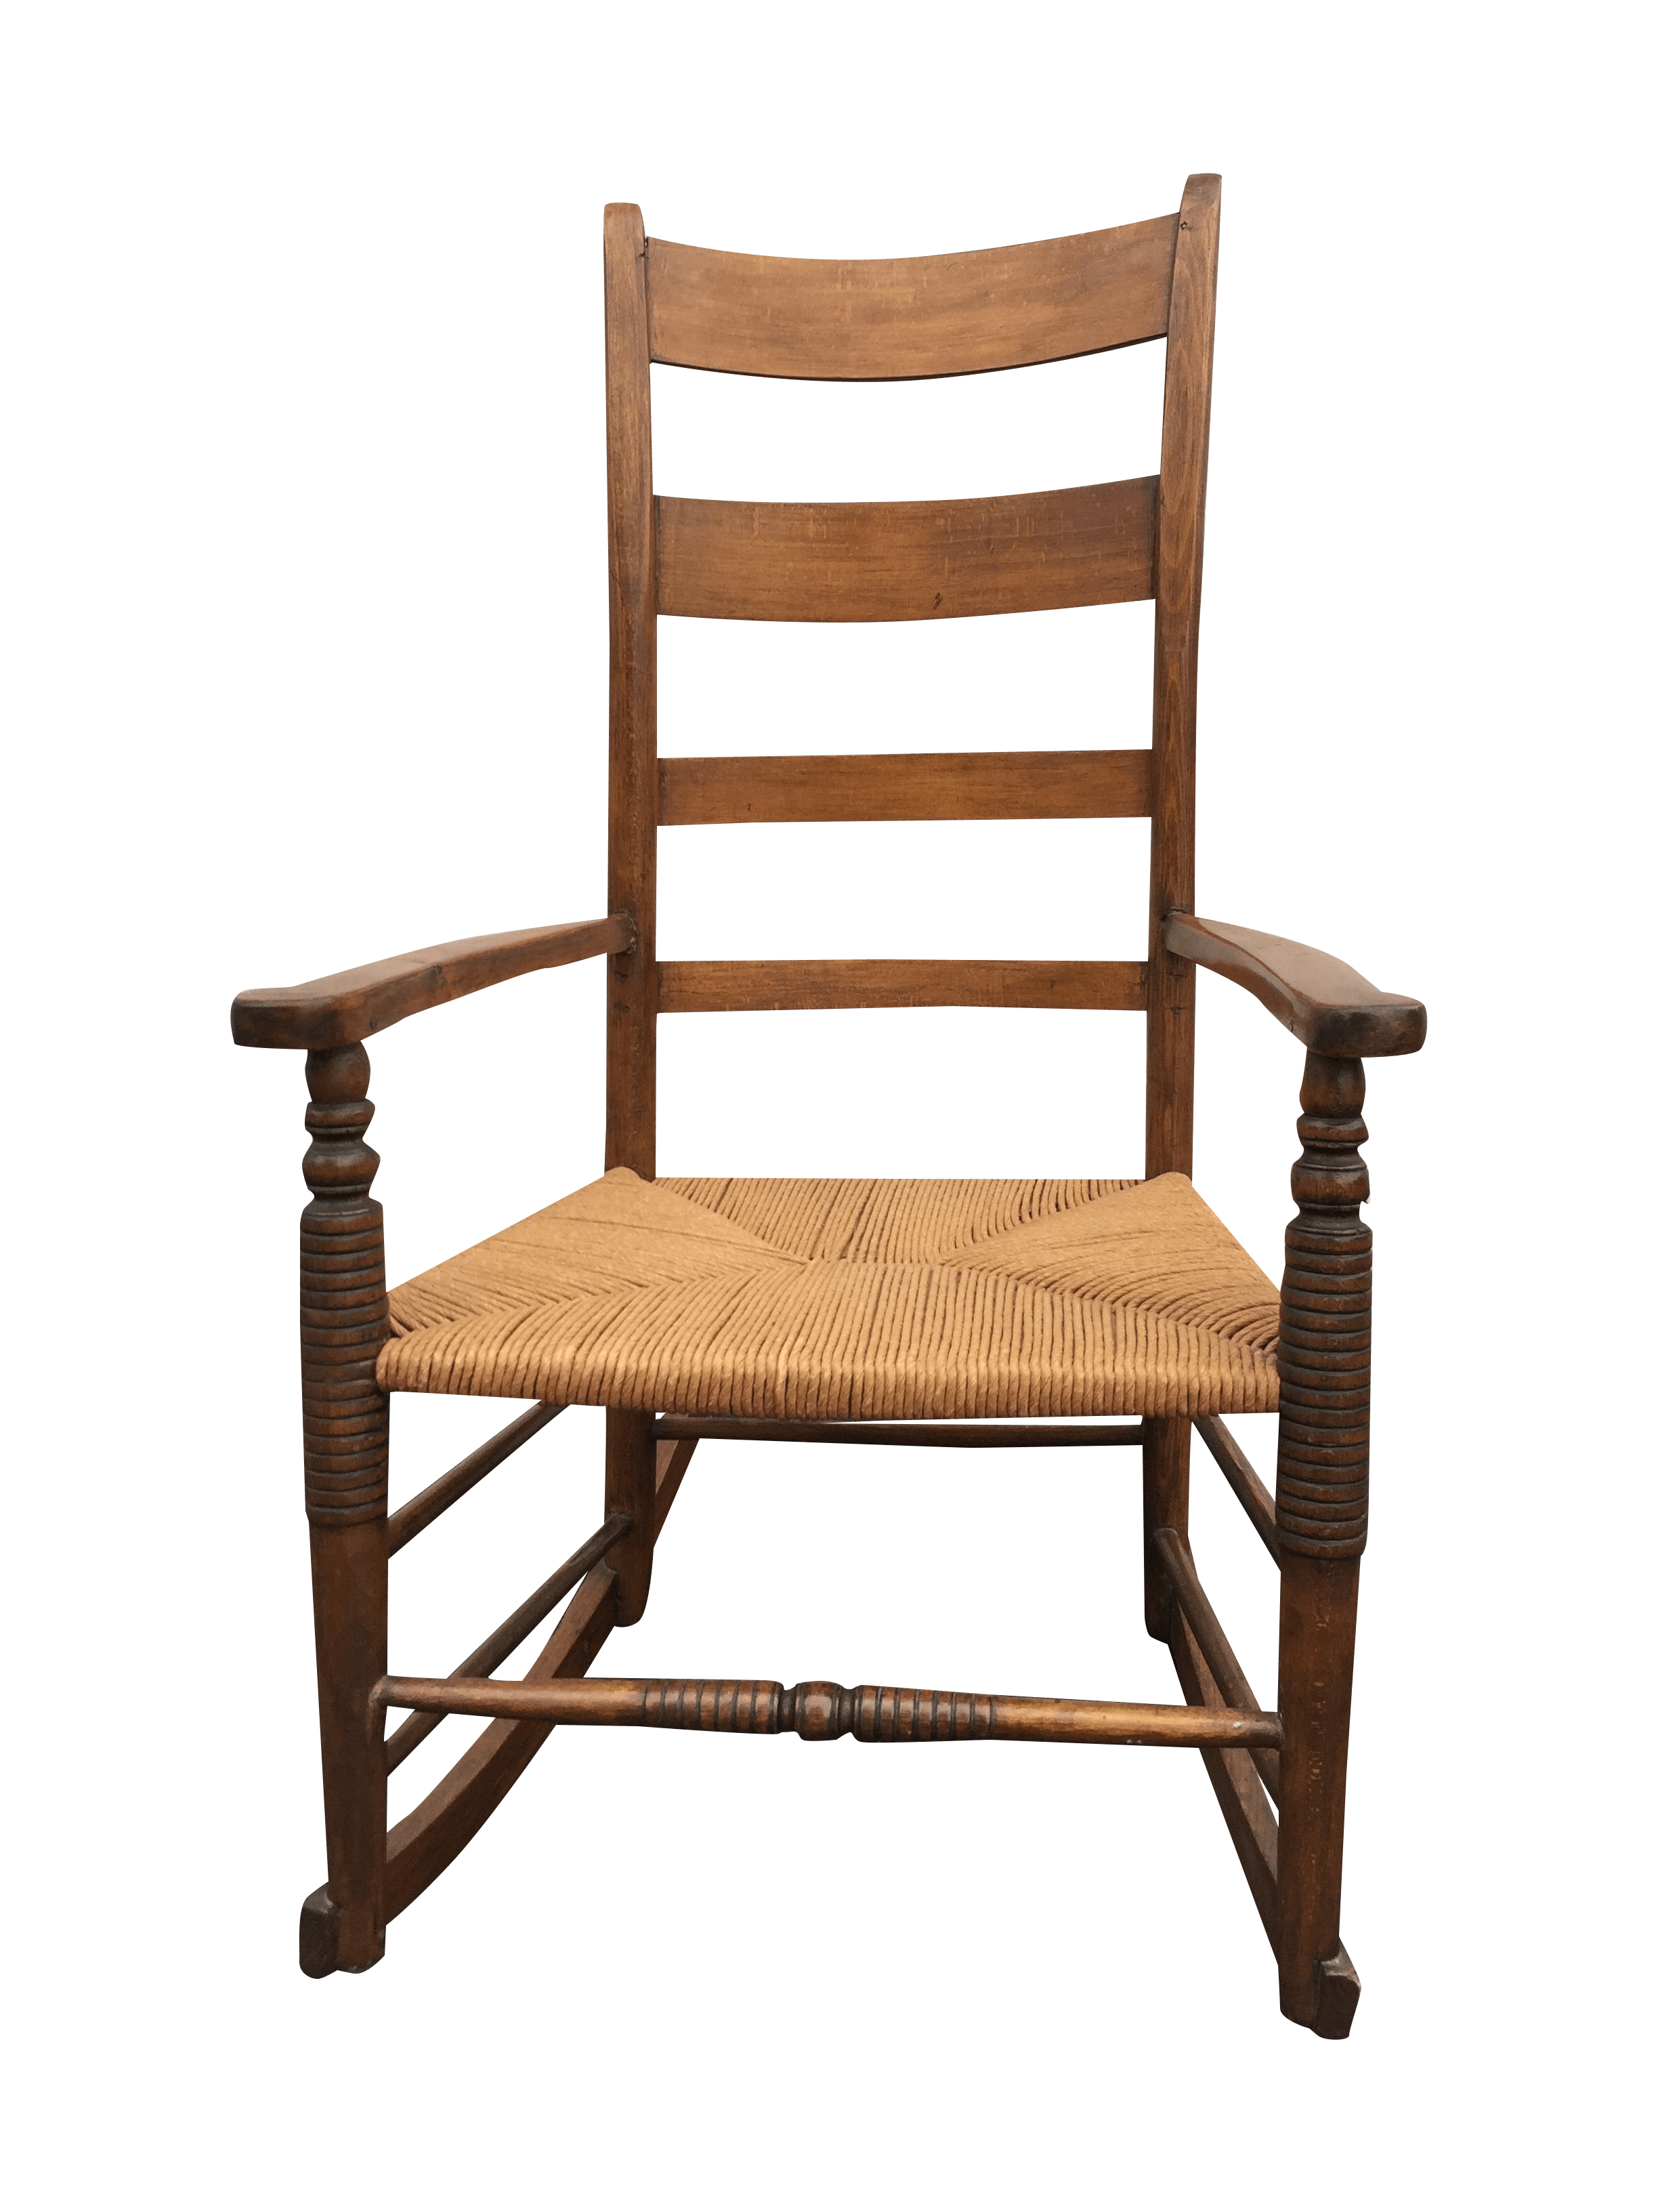 maple rocking chair gym owner's manual antique rush chairish